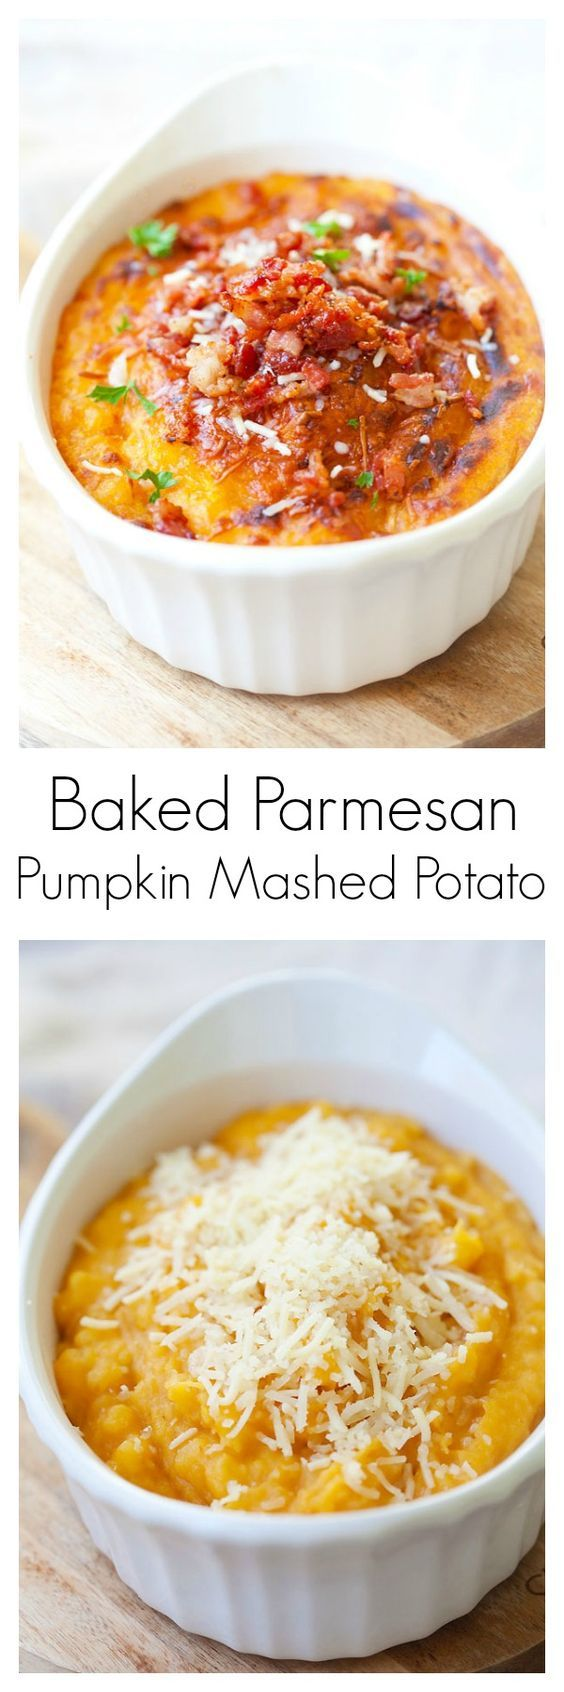 Baked parmesan pumkin mashed potatoes – super yummy pumpkin mashed potatoes loaded with parmesan cheese. Rich, creamy, cheesy and so easy | rasamalaysia.com